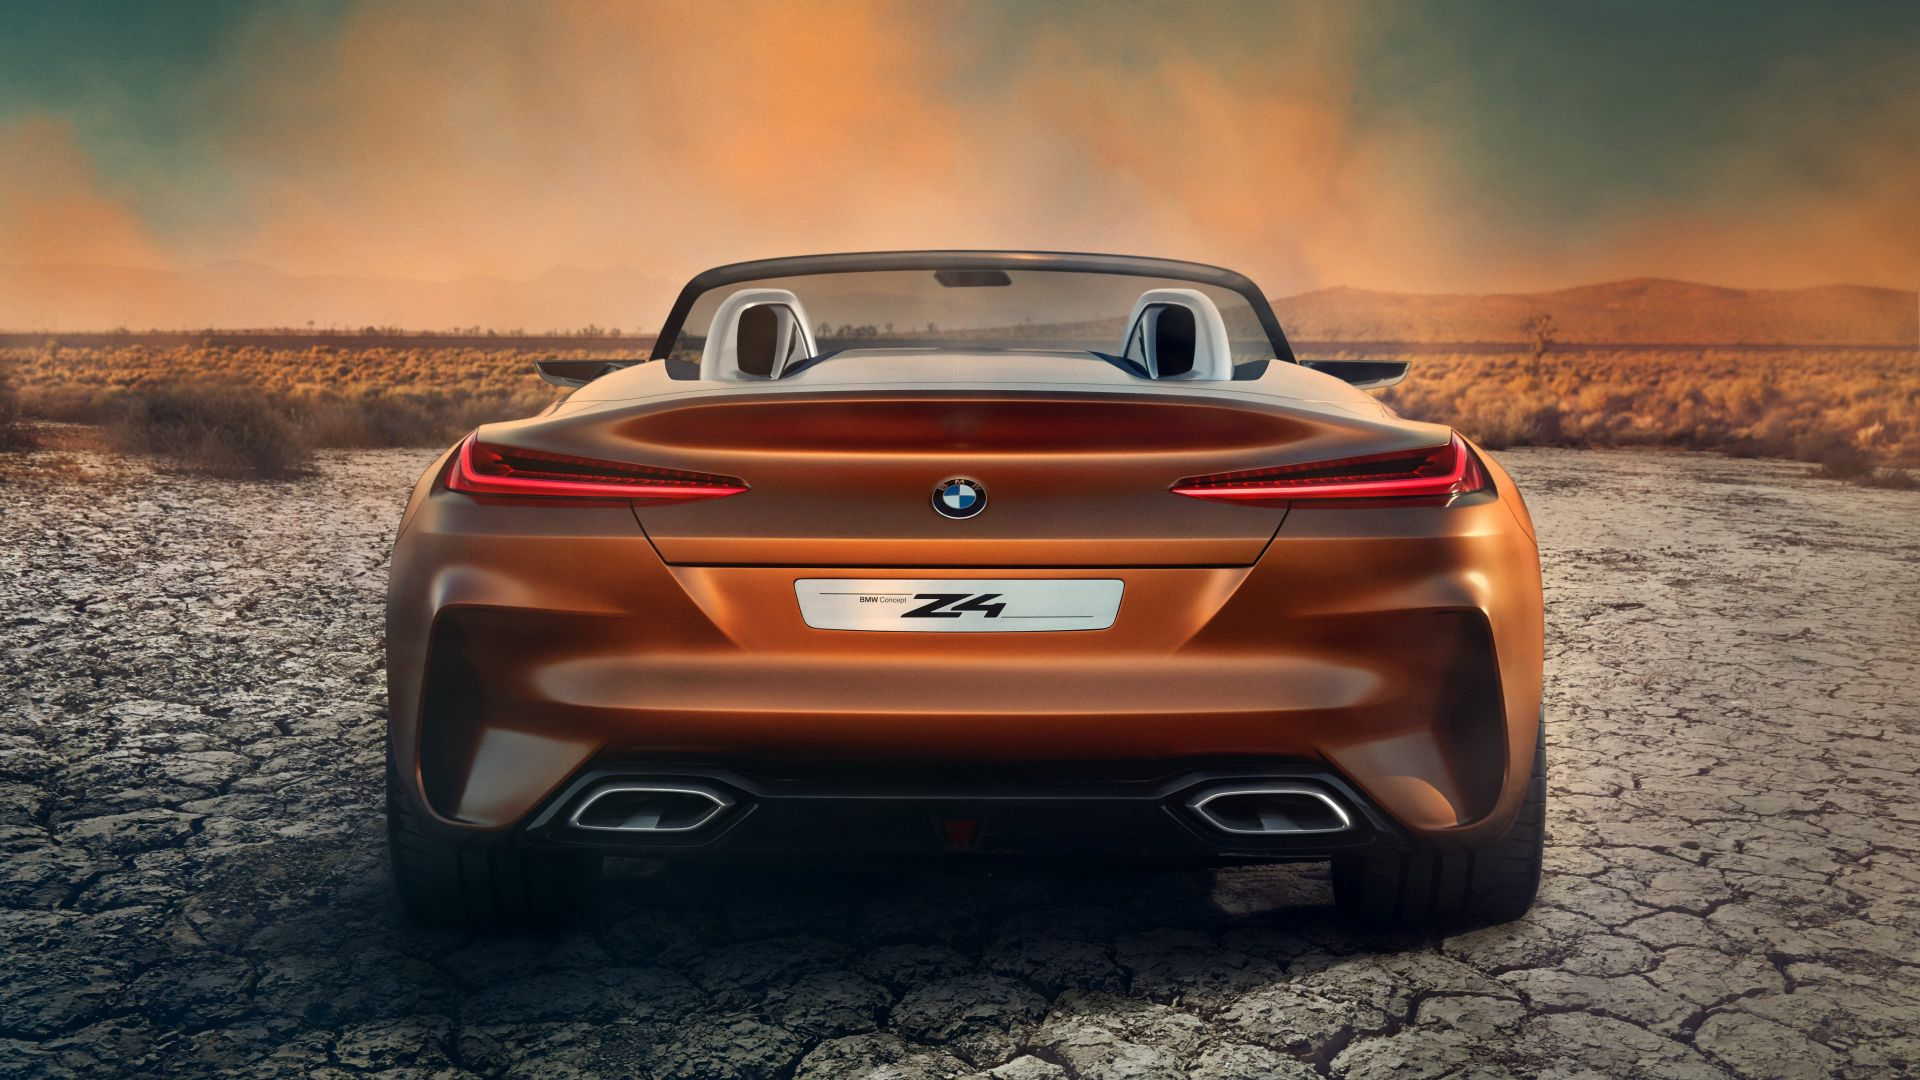 Bmw Z4 Roadster Wallpapers Wallpapers All Superior Bmw Z4 Roadster Wallpapers Backgrounds Wallpapersplanet Net